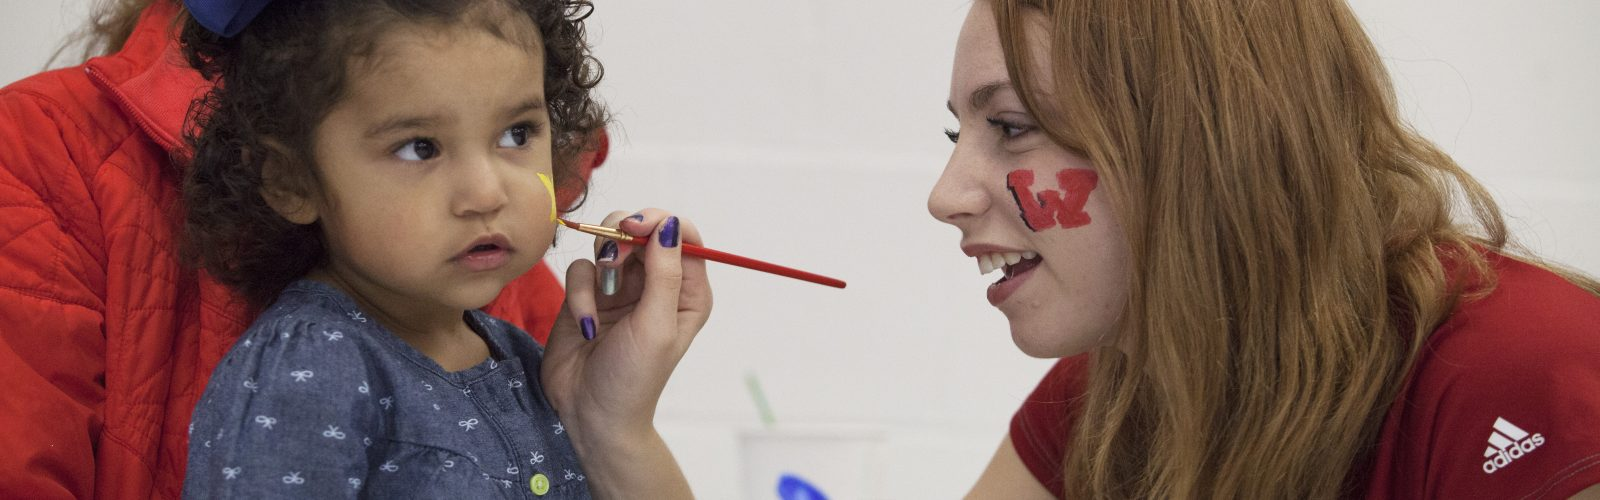 A girl gets her face painted at University Apartments' Wisconsin Fest.